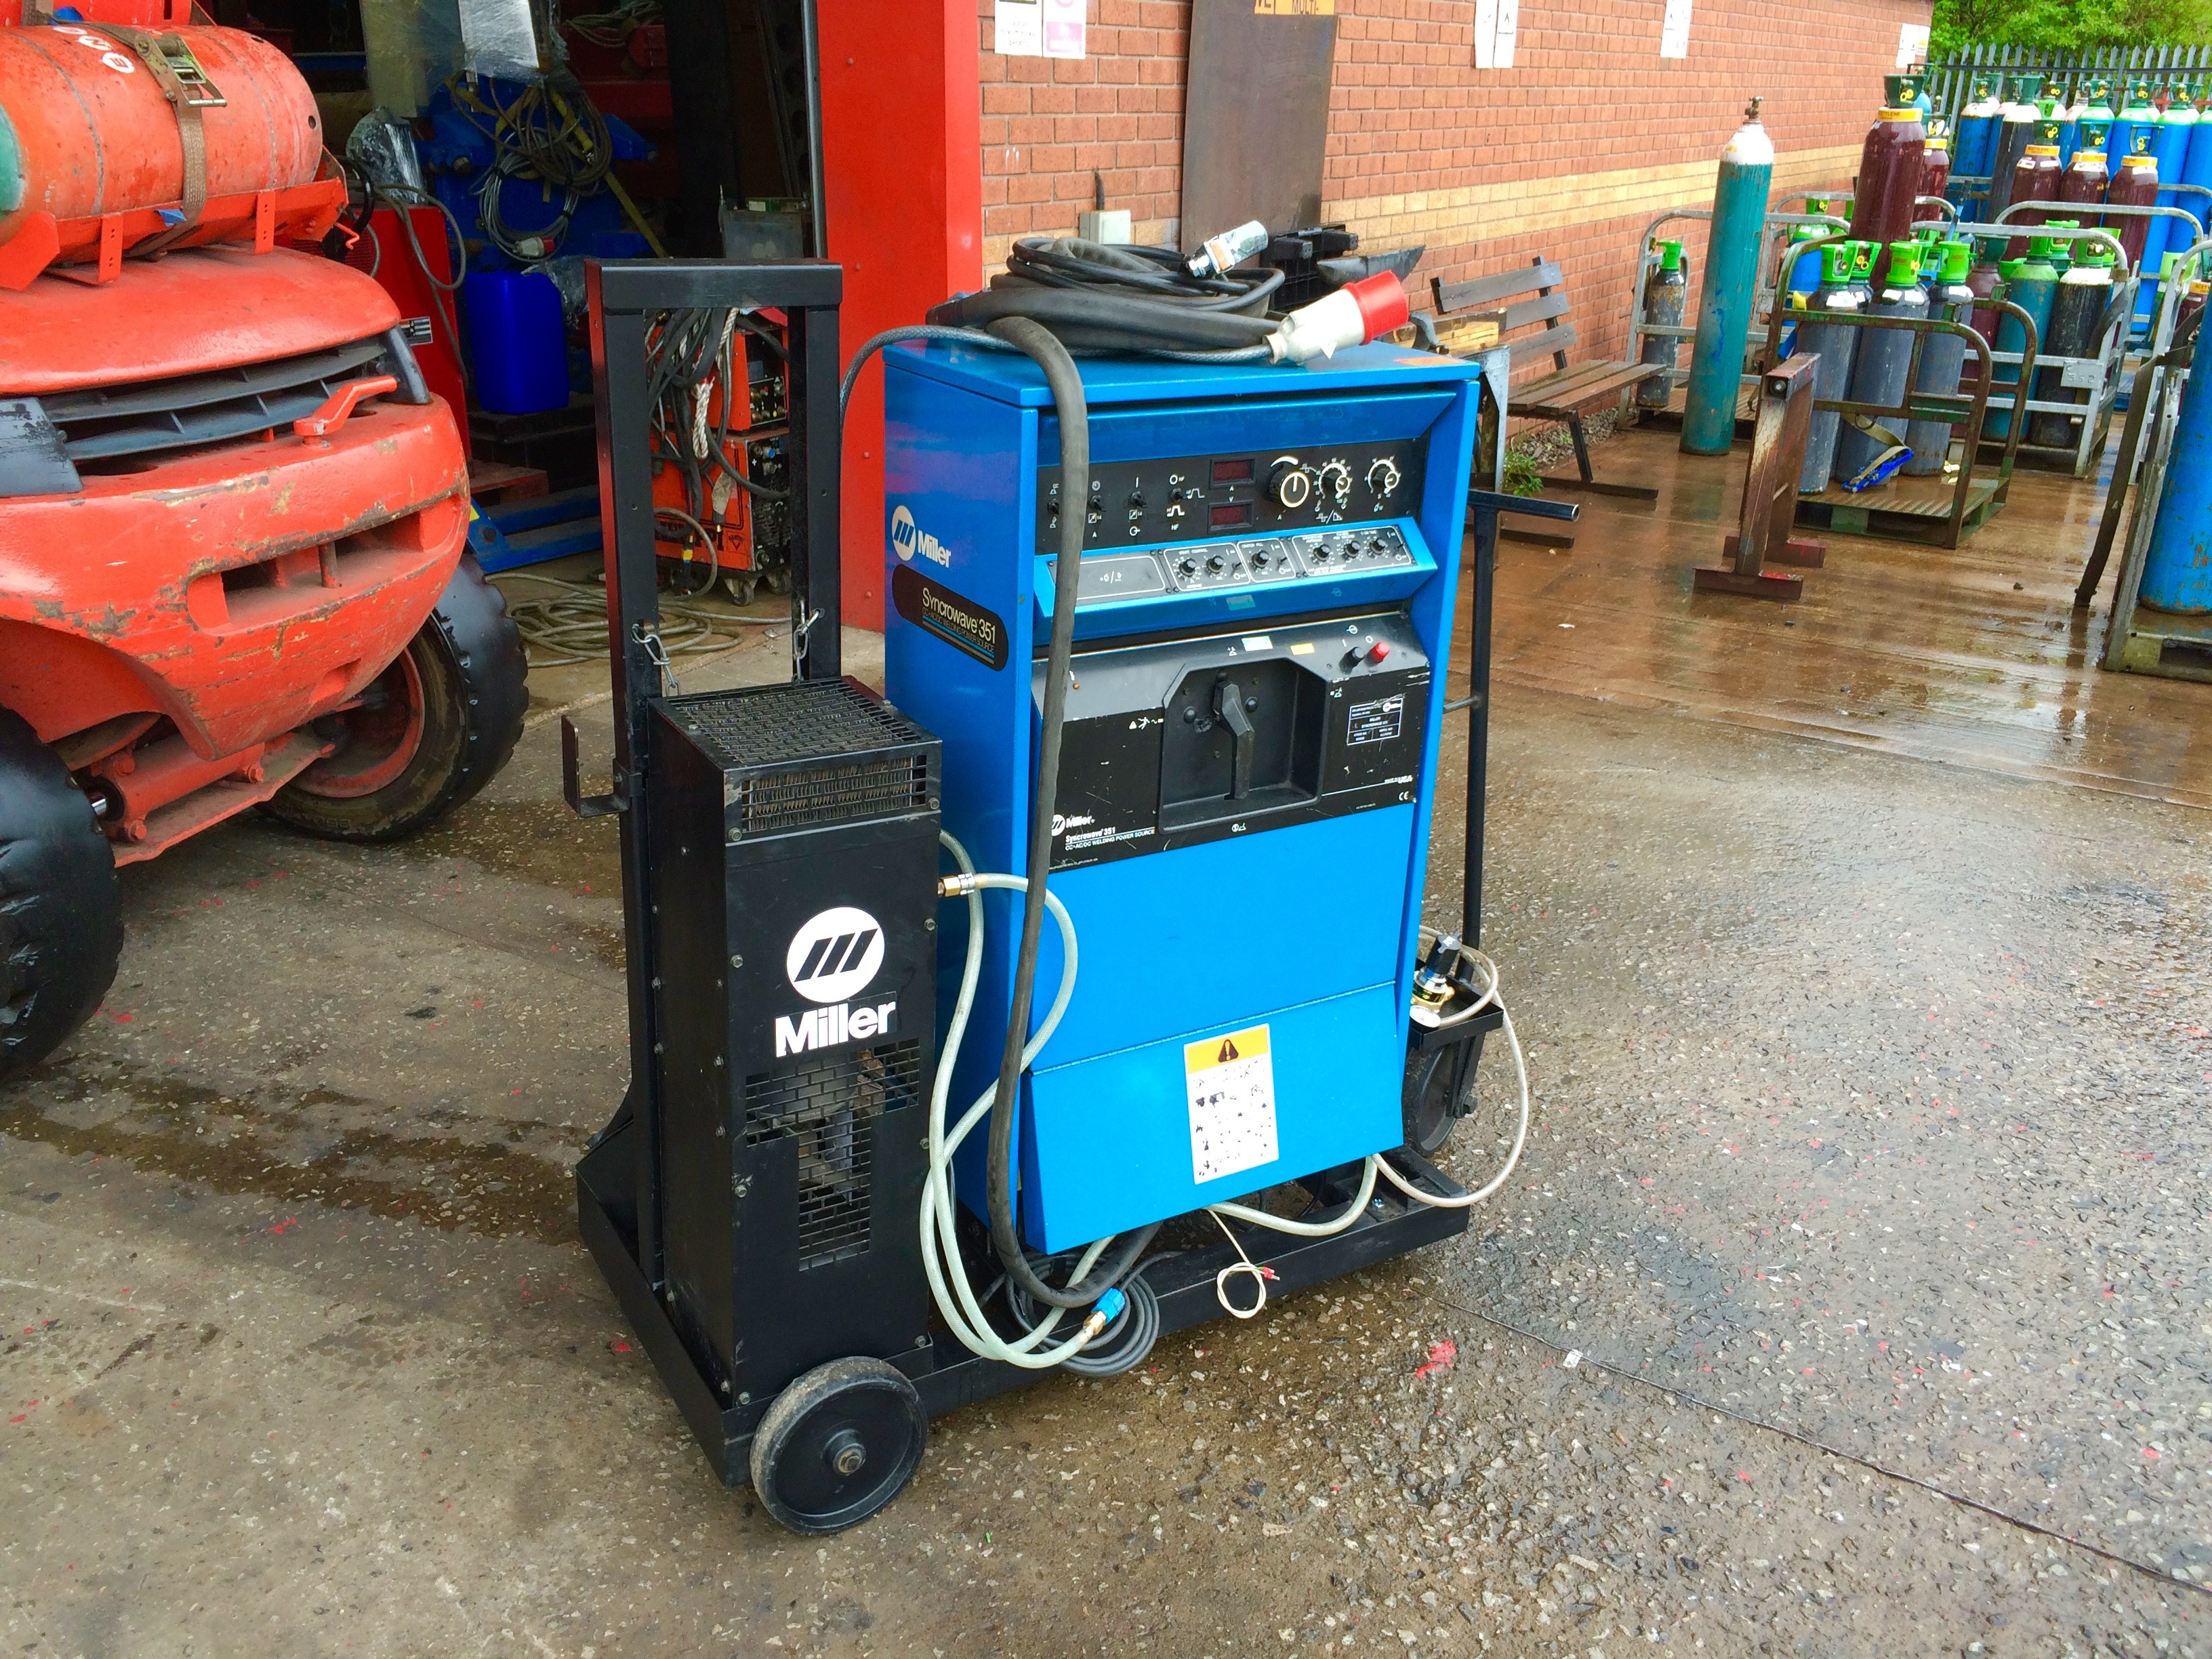 7. Miller Syncrowave 351 ACDC Digital Water Cooled TIG Welding Machine